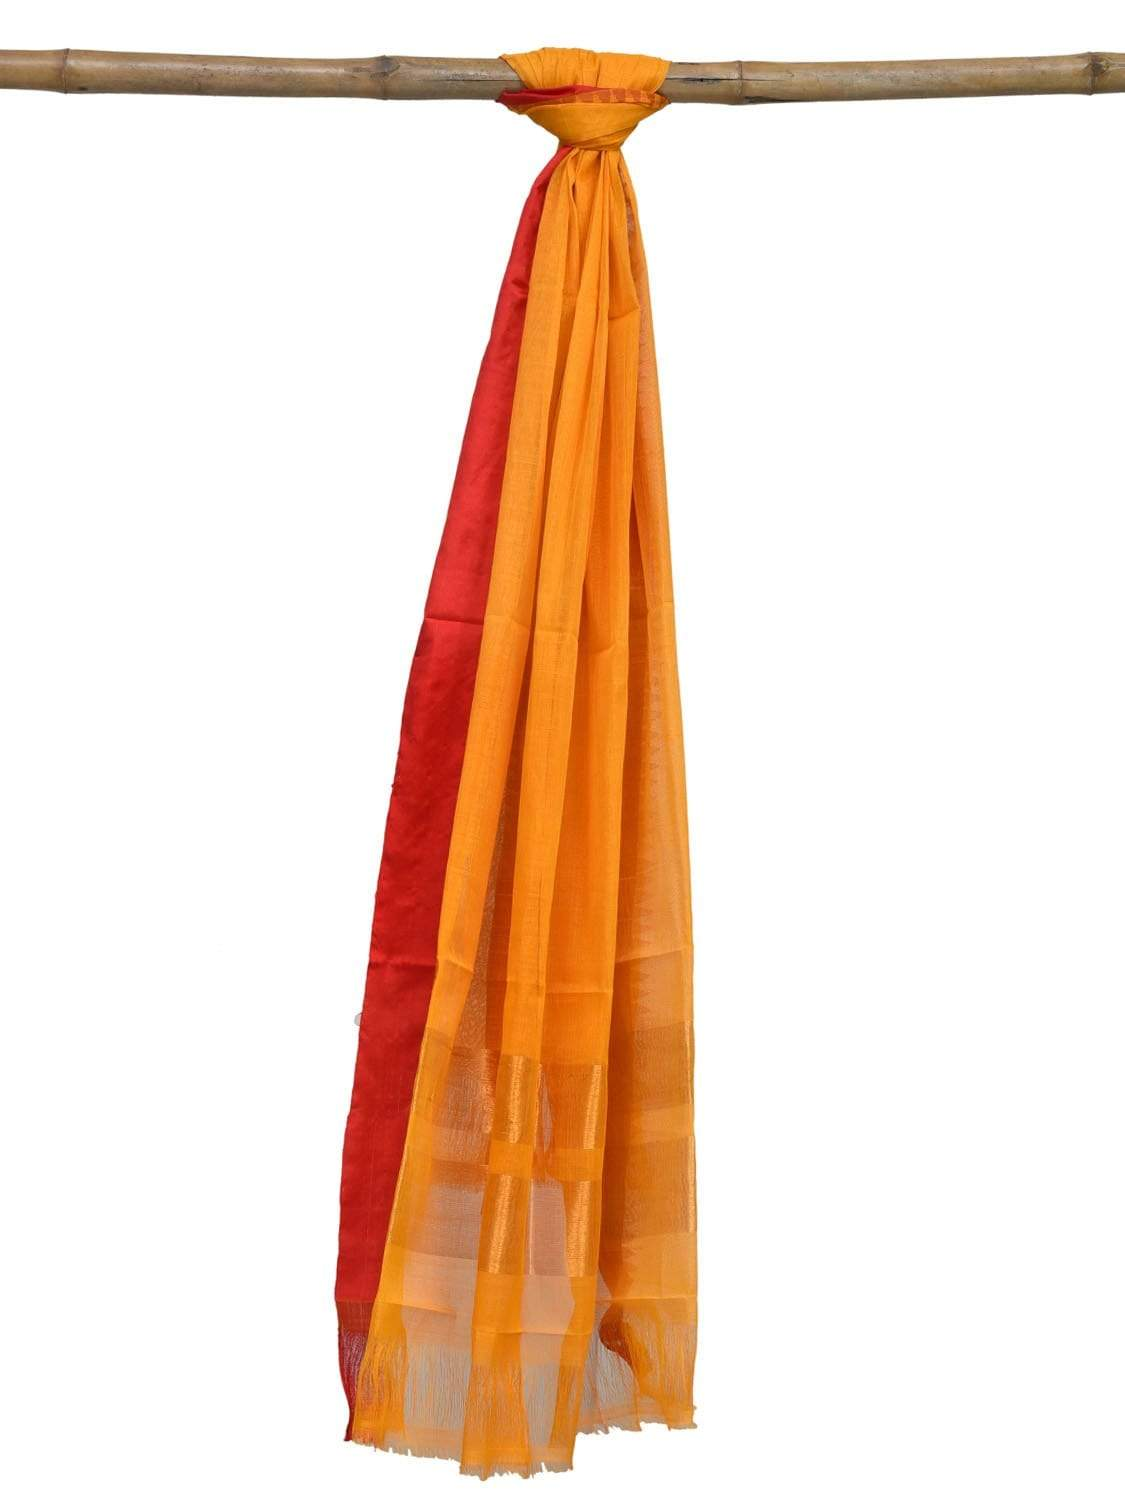 Yellow Khadi Cotton Handloom Dupatta with Silk Border Design ds1883